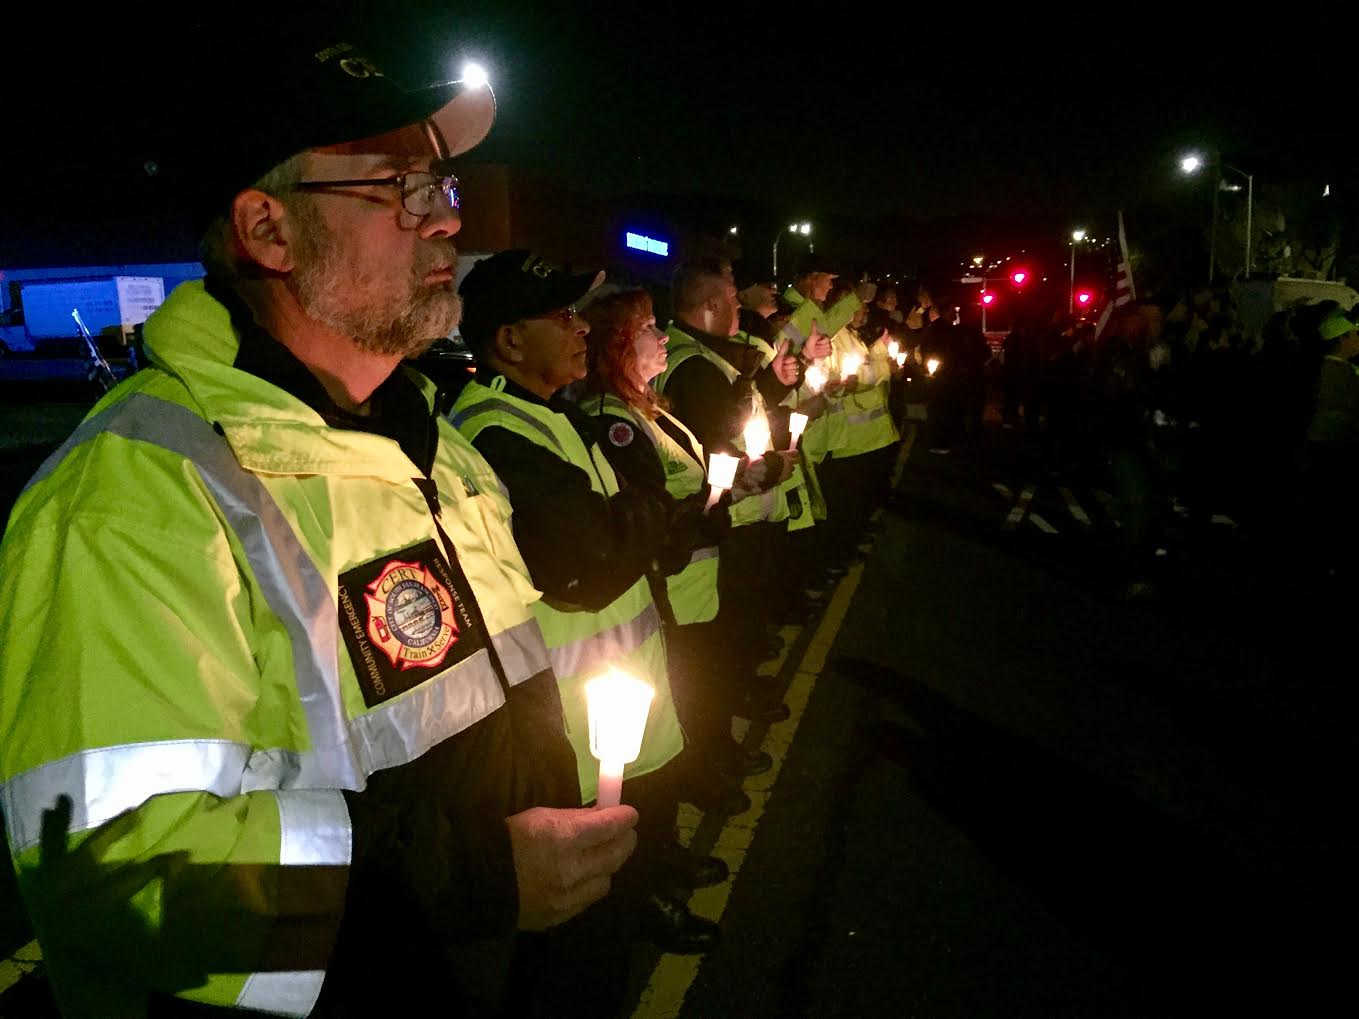 SSF CERT held a line of solidarity at the back of the crowd. Photo: Leslie Arroyo SSF